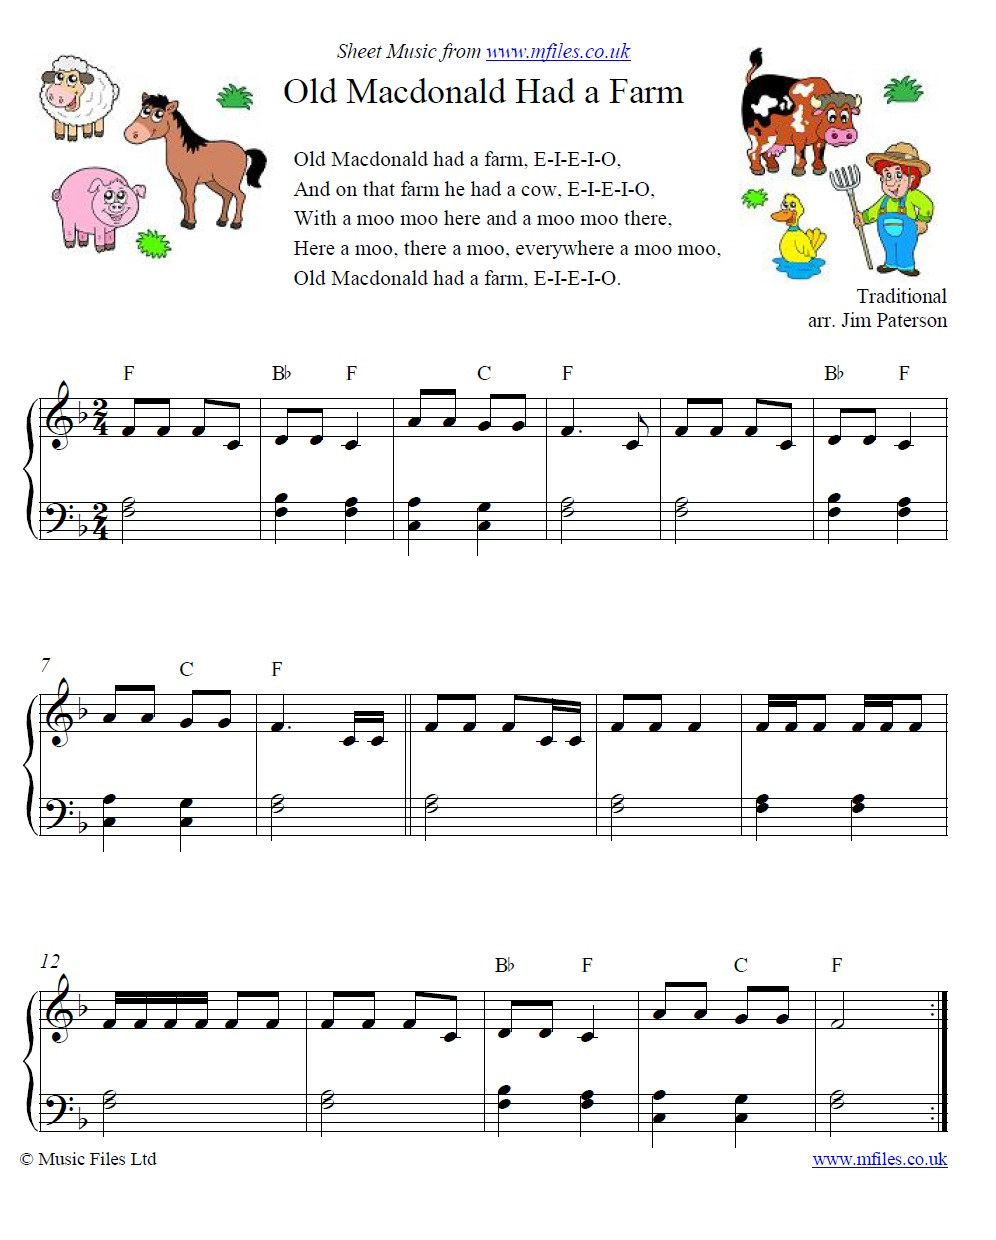 Old McDonald Had a Farm: a traditional Children's Song - download